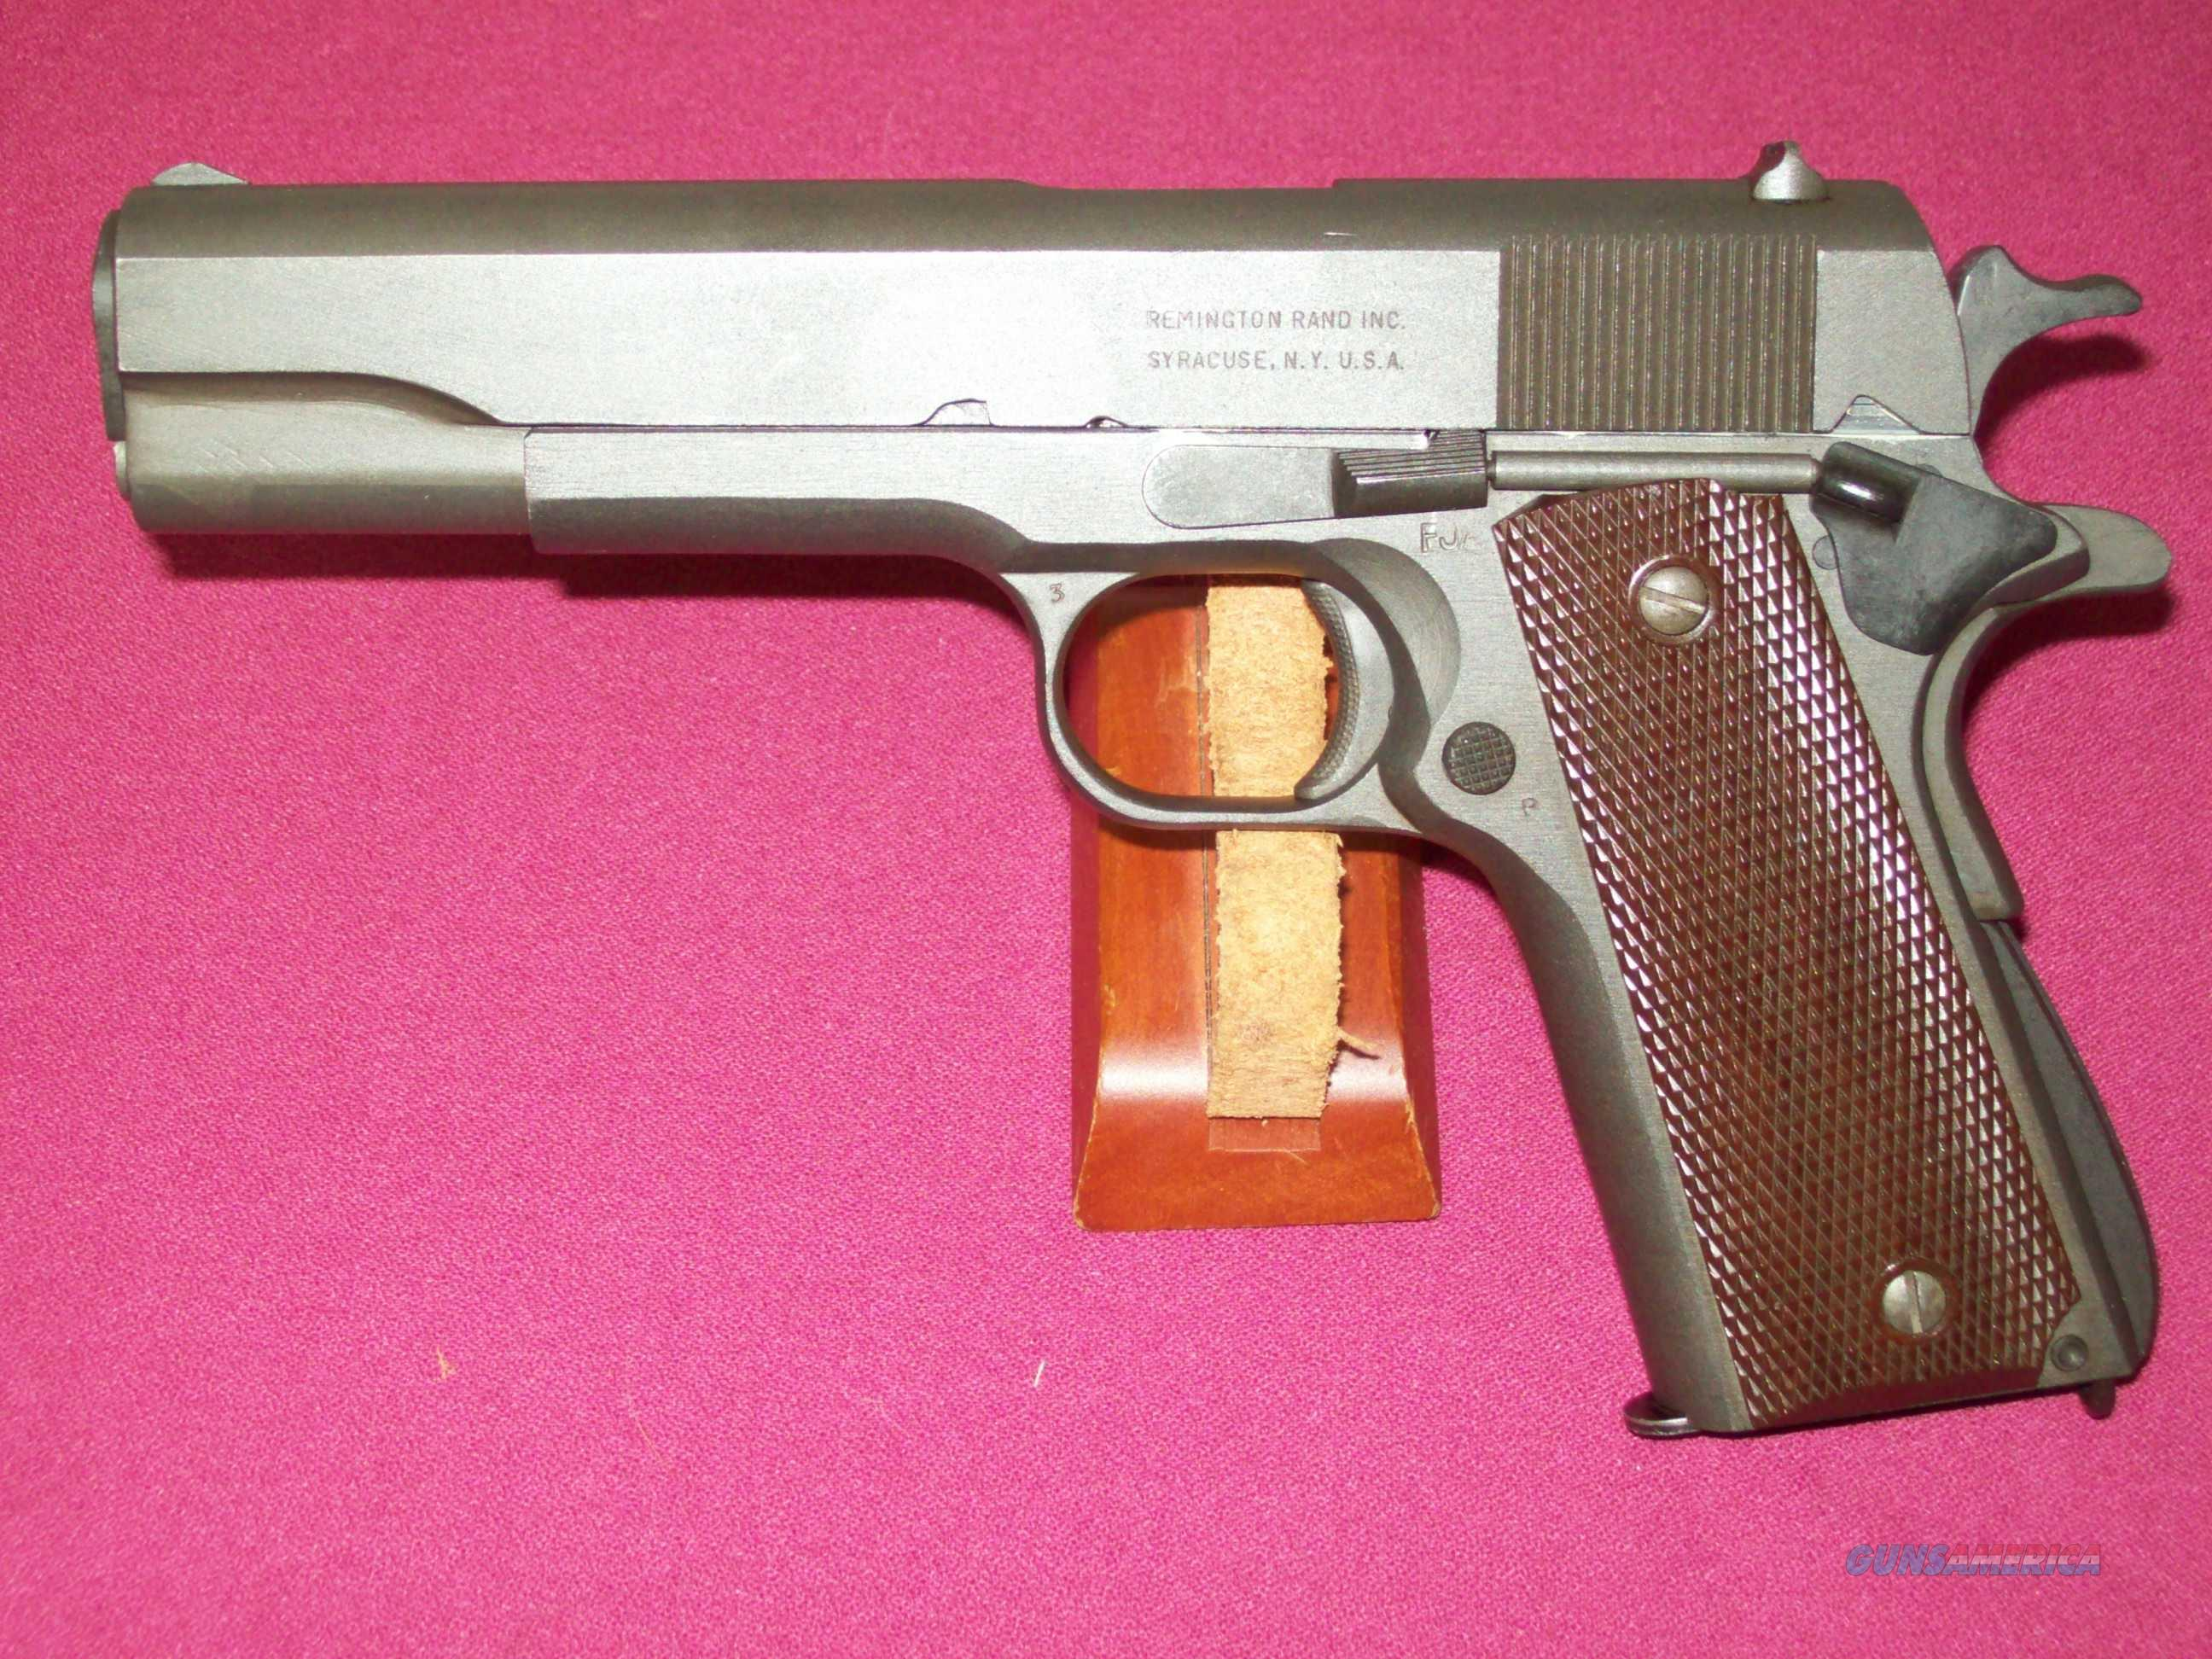 Remington Rand 1911-A1  45 serial number 2198817